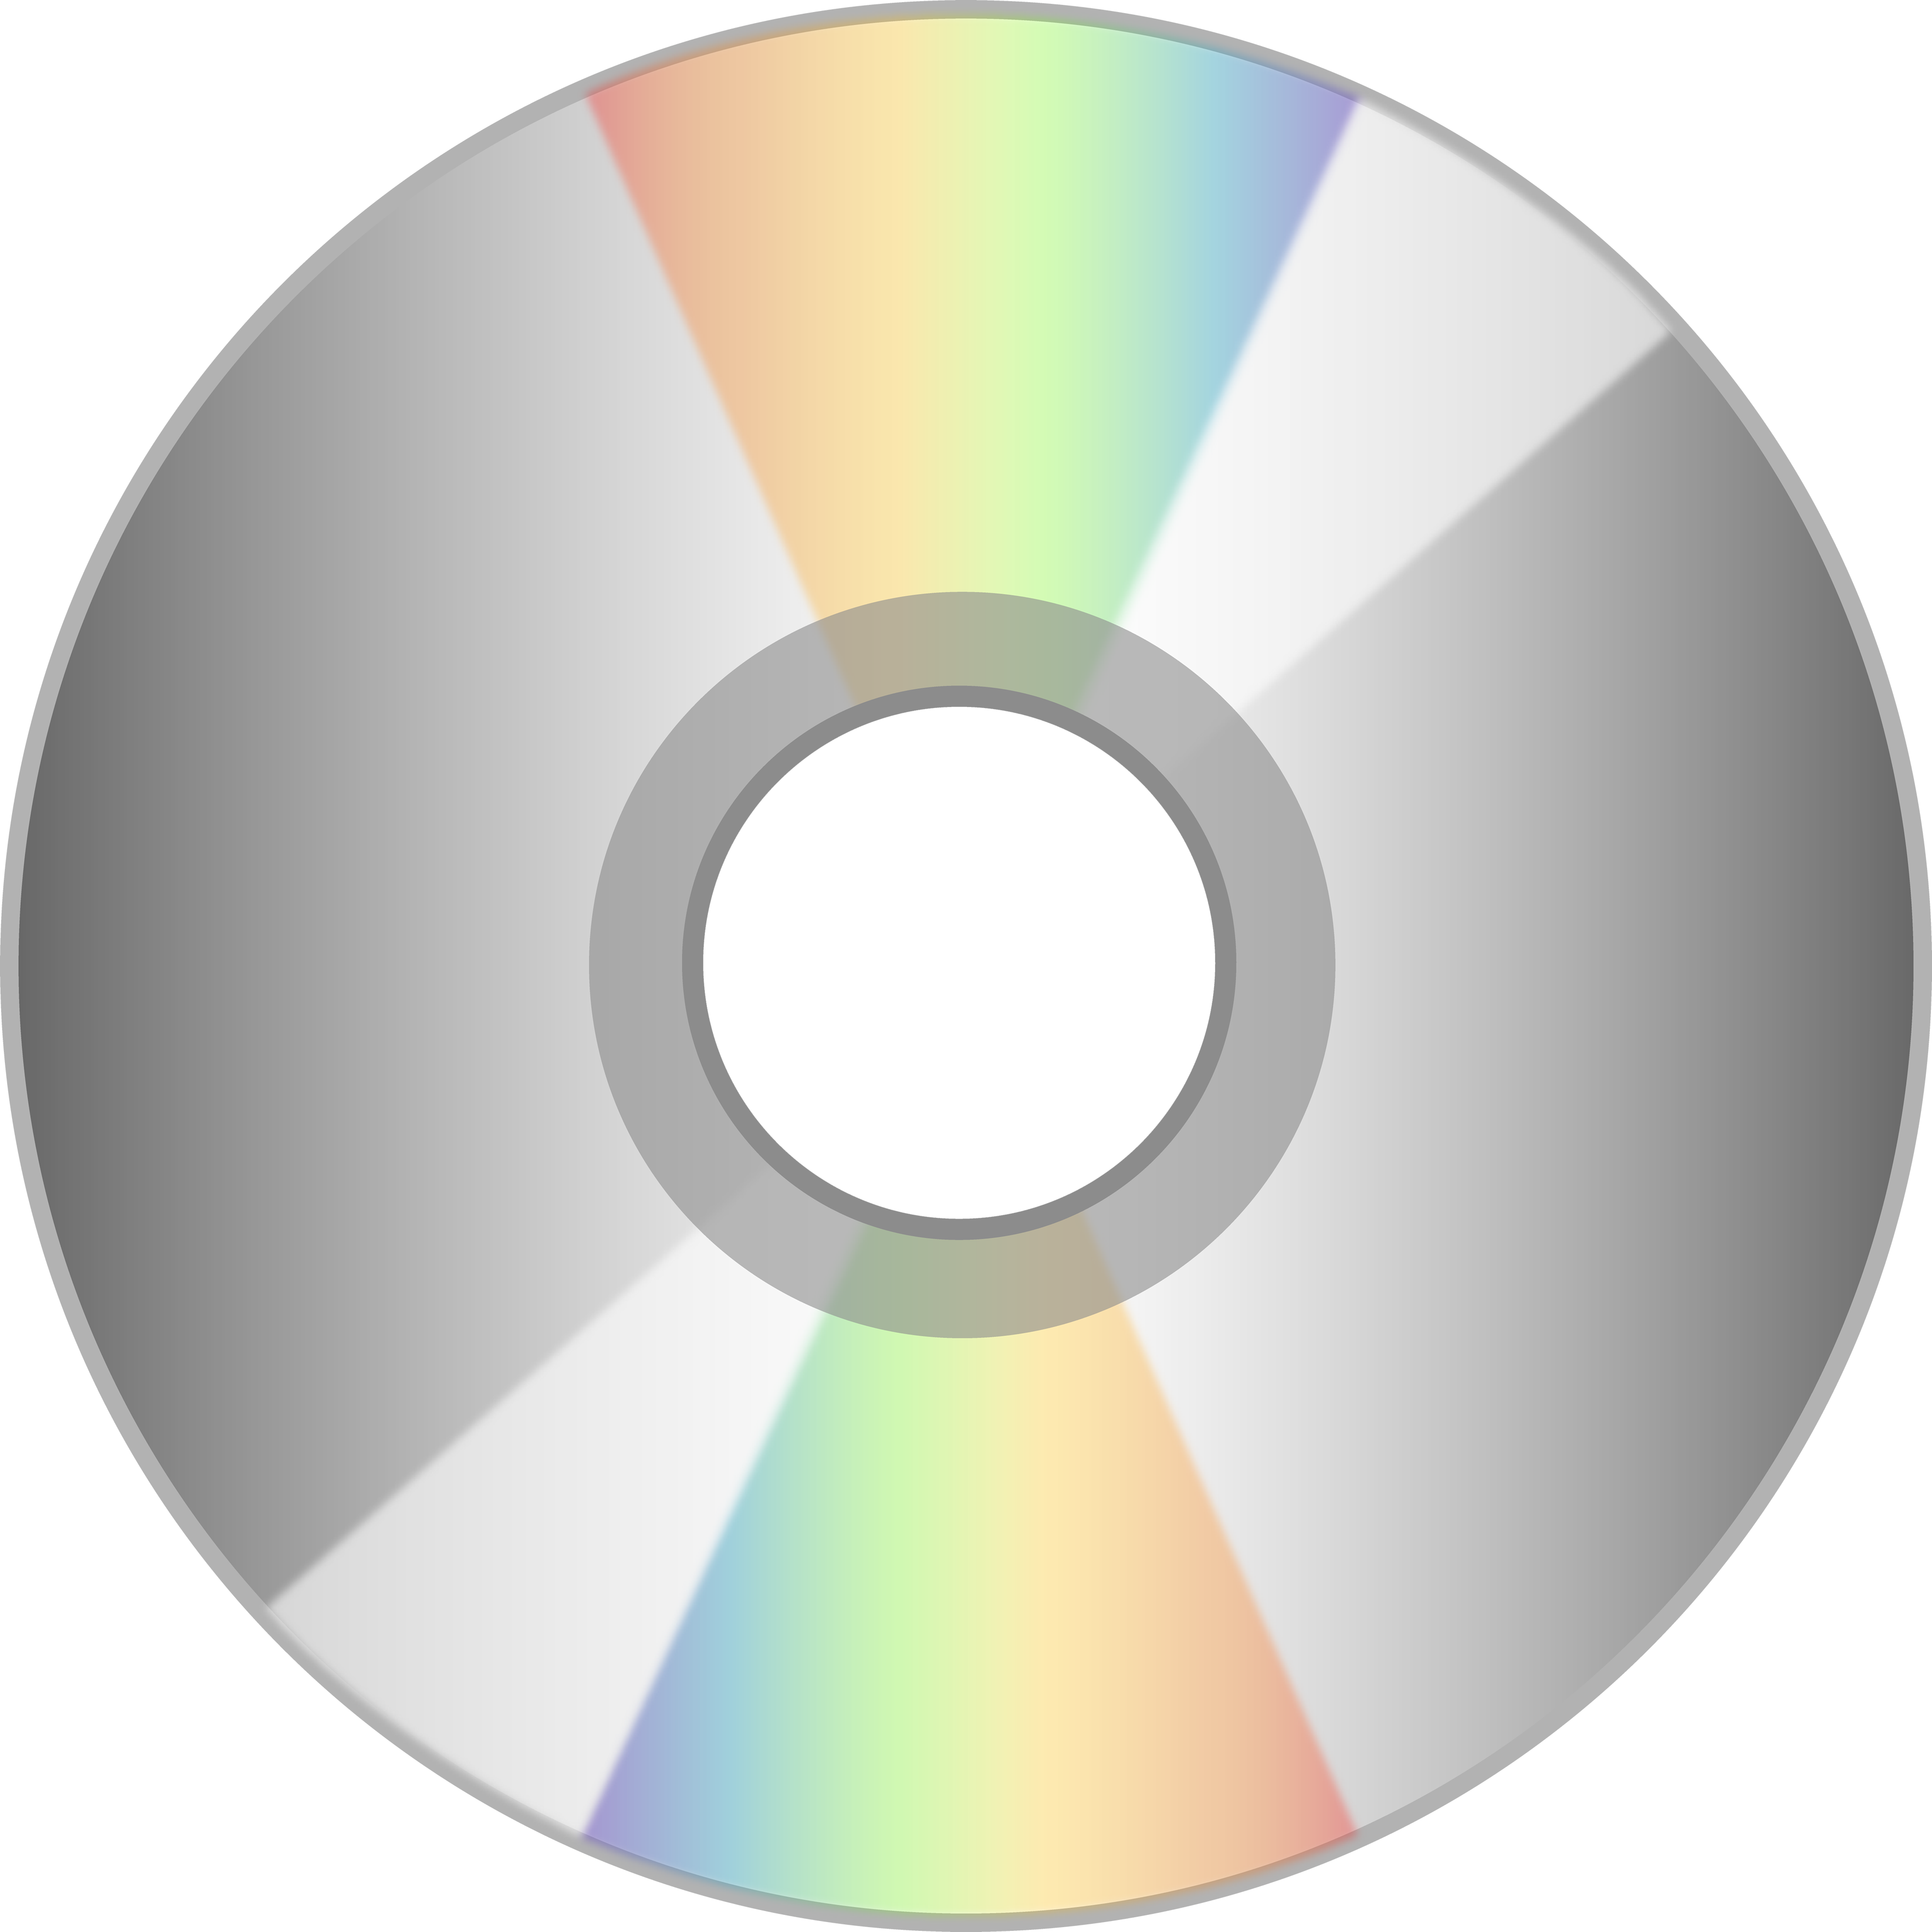 Cd clipart computer tool. Electronics png images free